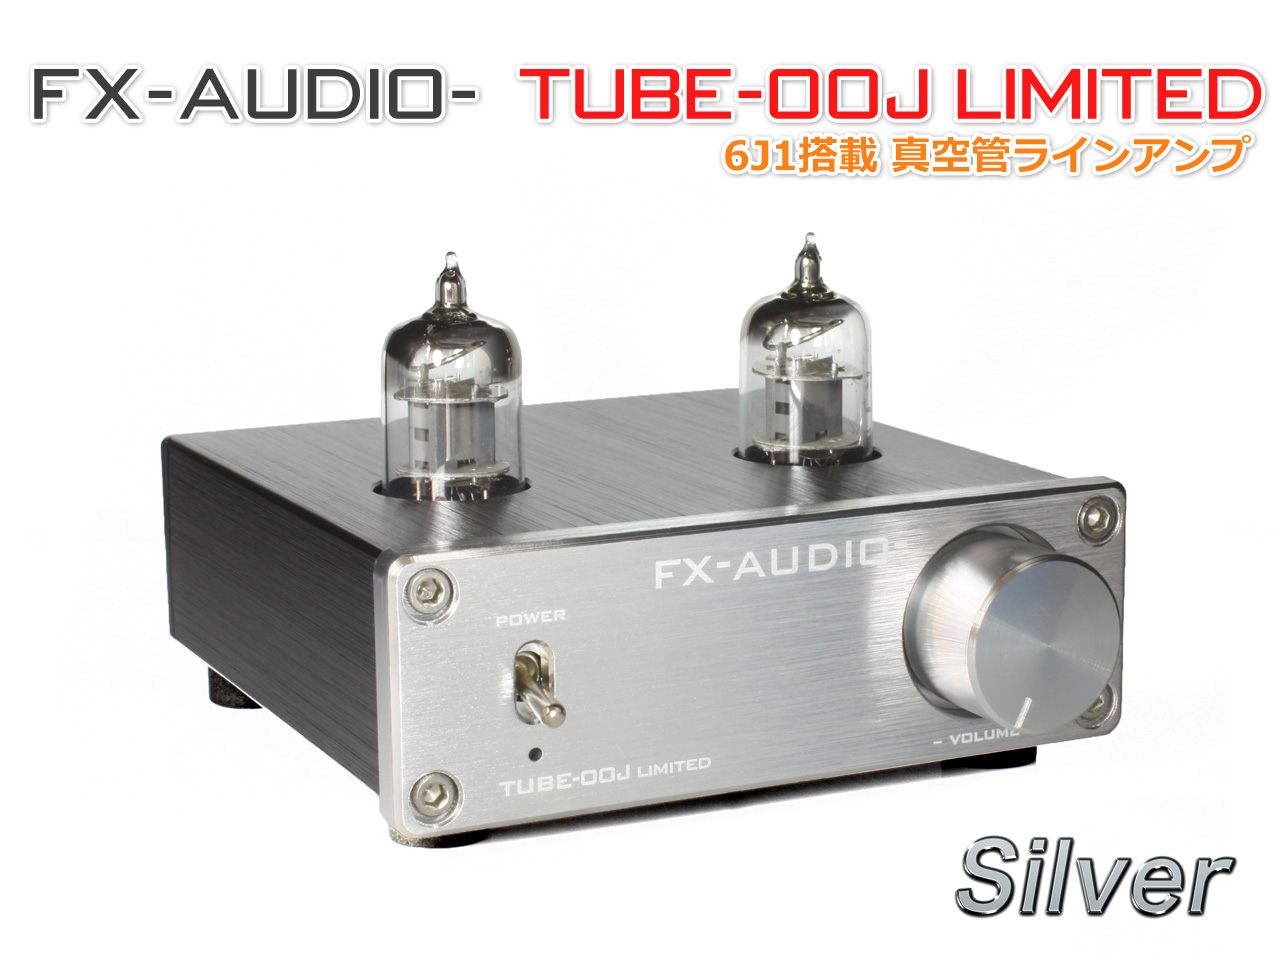 Line amplifier special limited production model mounted with FX-AUDIO-  TUBE-00J LIMITED [silver] 6J1 military use sorting grade vacuum tube